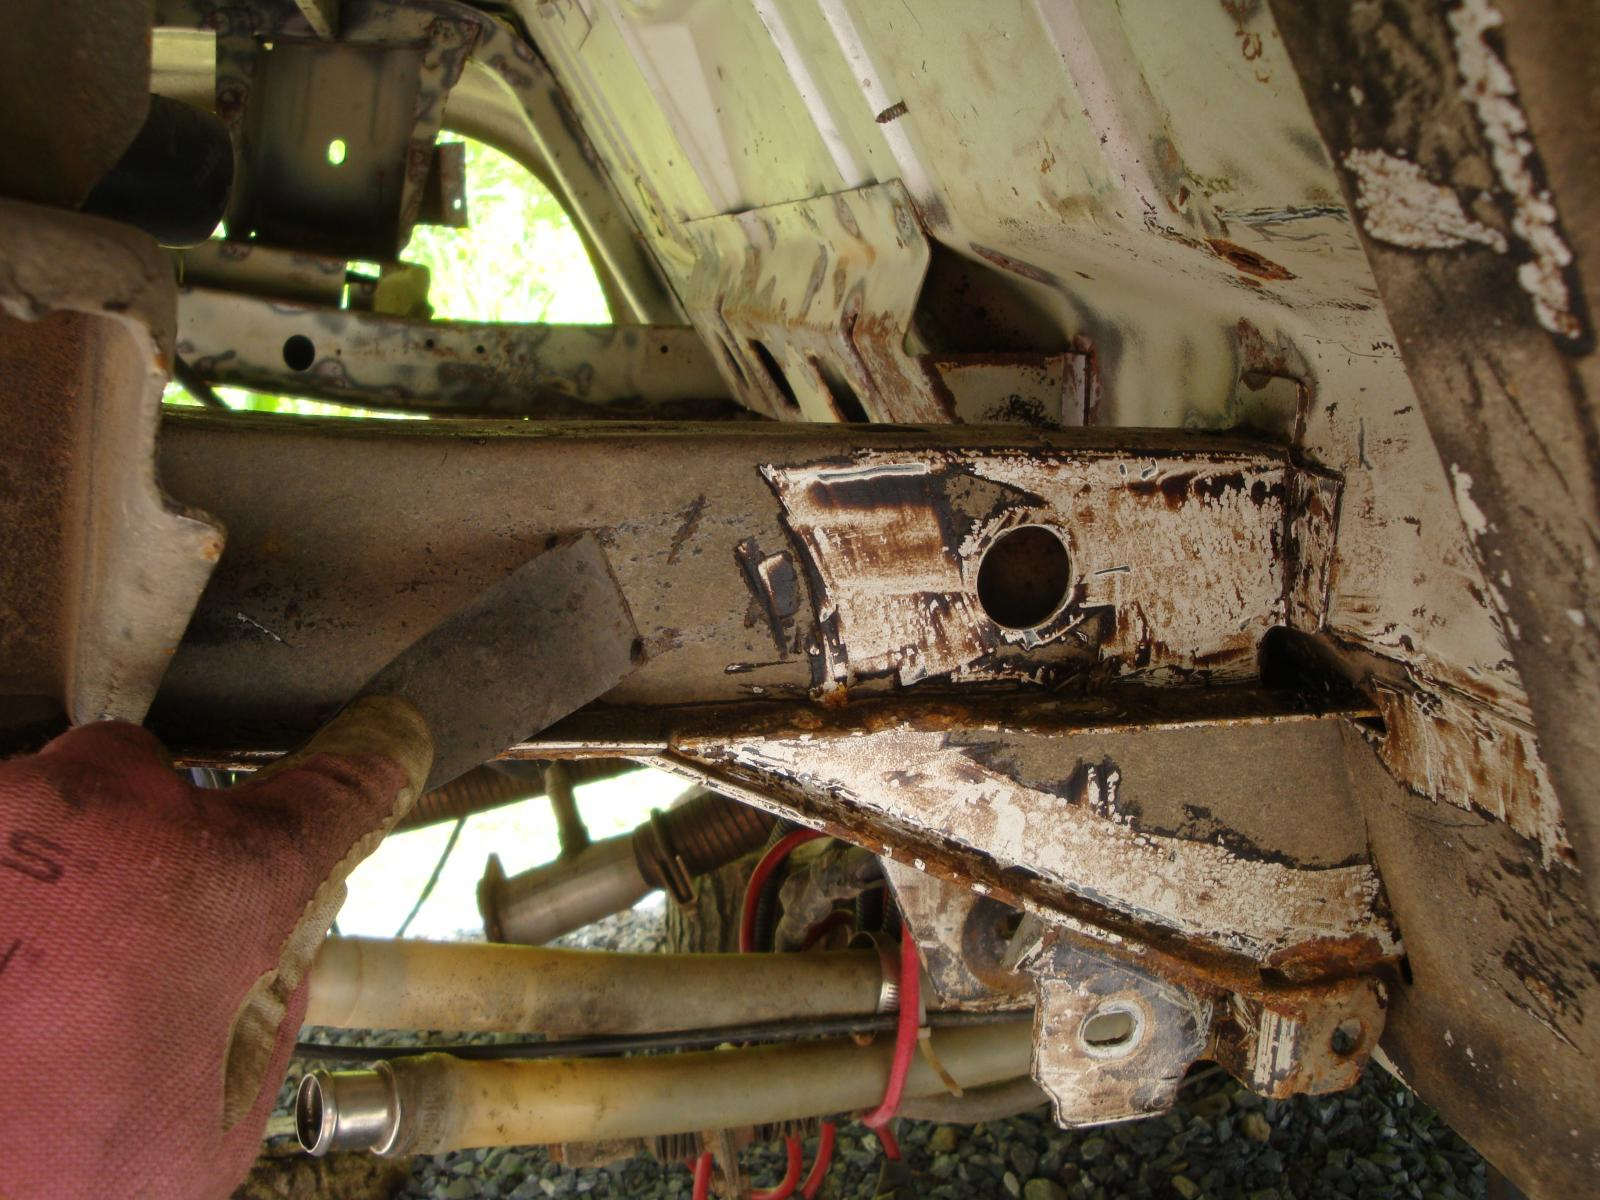 Underbody dirt corrosion and underseal removal